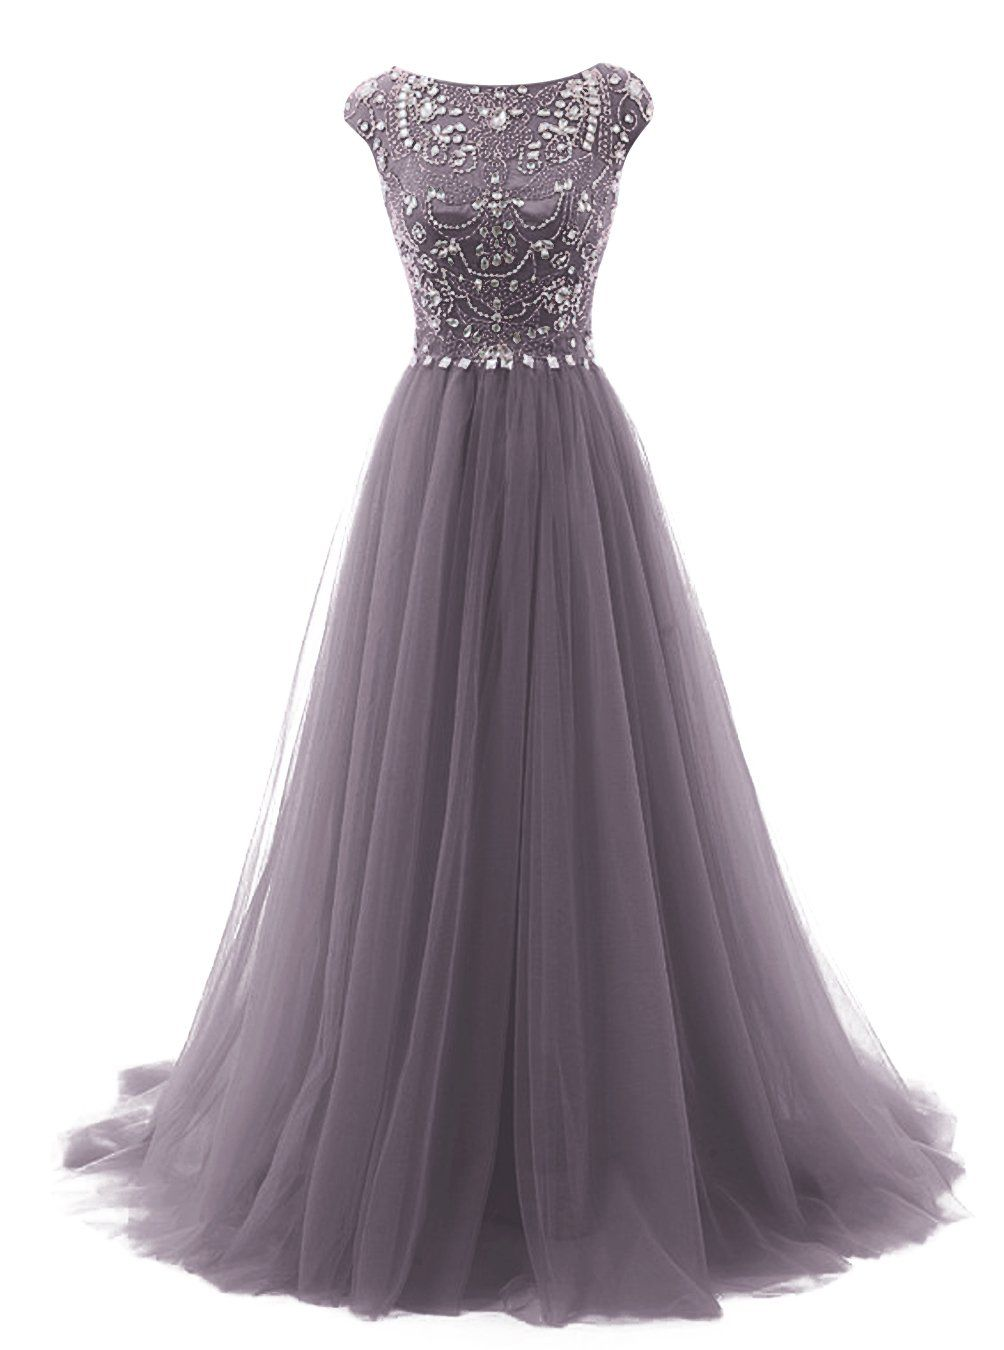 Tideclothes long beads prom dress tulle cap sleeves evening dress at